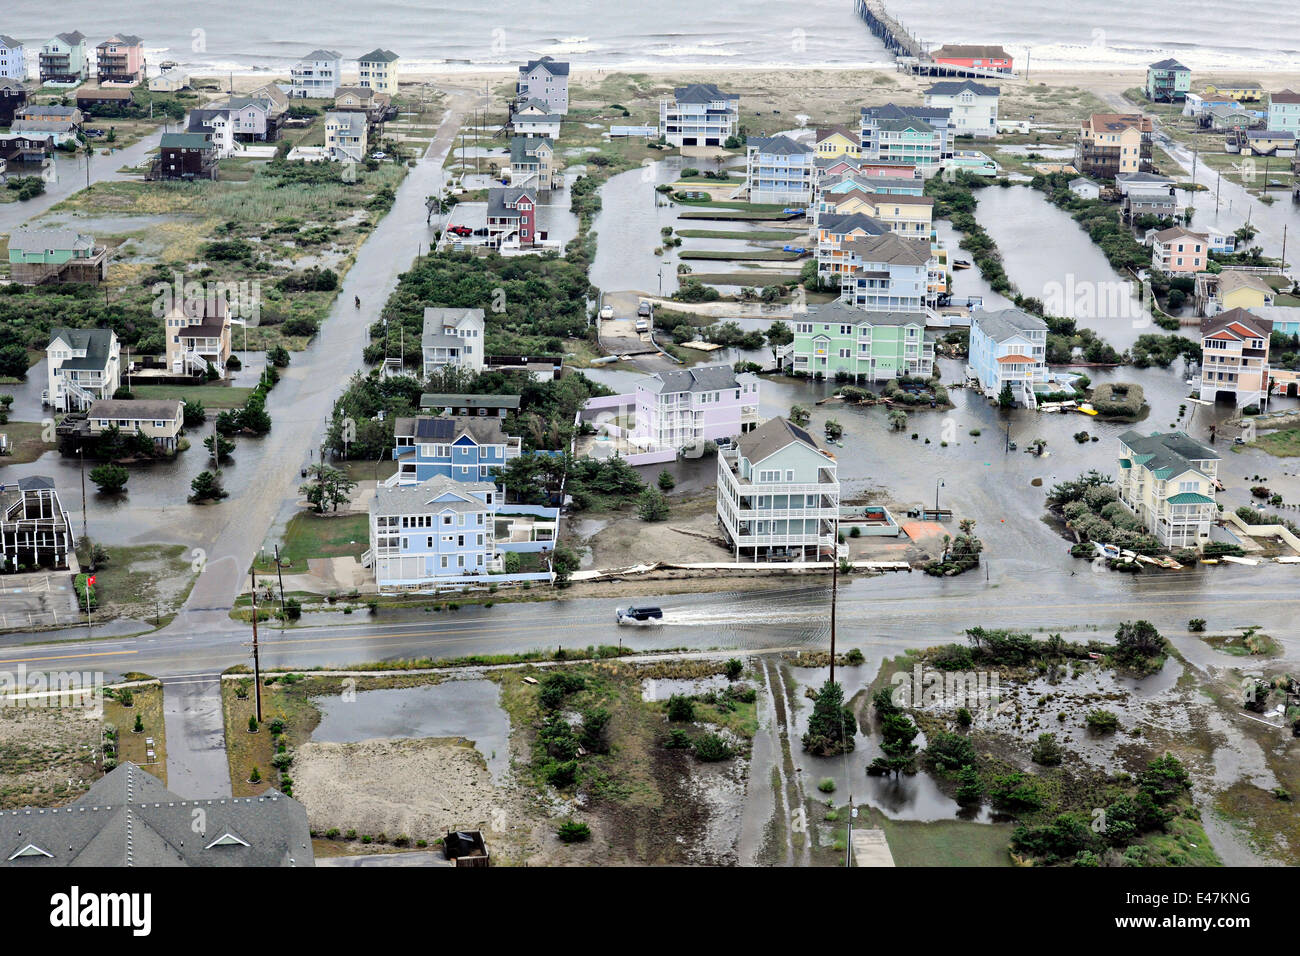 Aerial view of flooding caused by Hurricane Arthur on the Outer Banks July 4, 2014 in Nags Head, North Carolina. - Stock Image